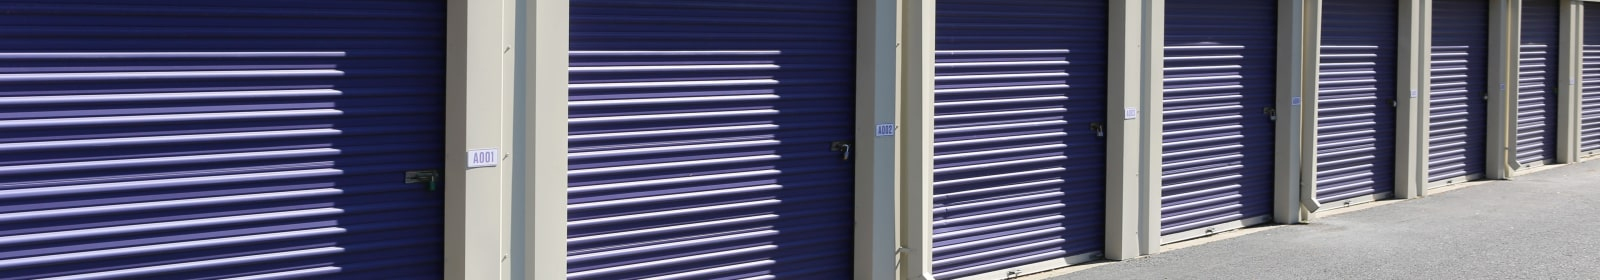 Business storage at StoreSmart Self-Storage in Rockledge, Florida